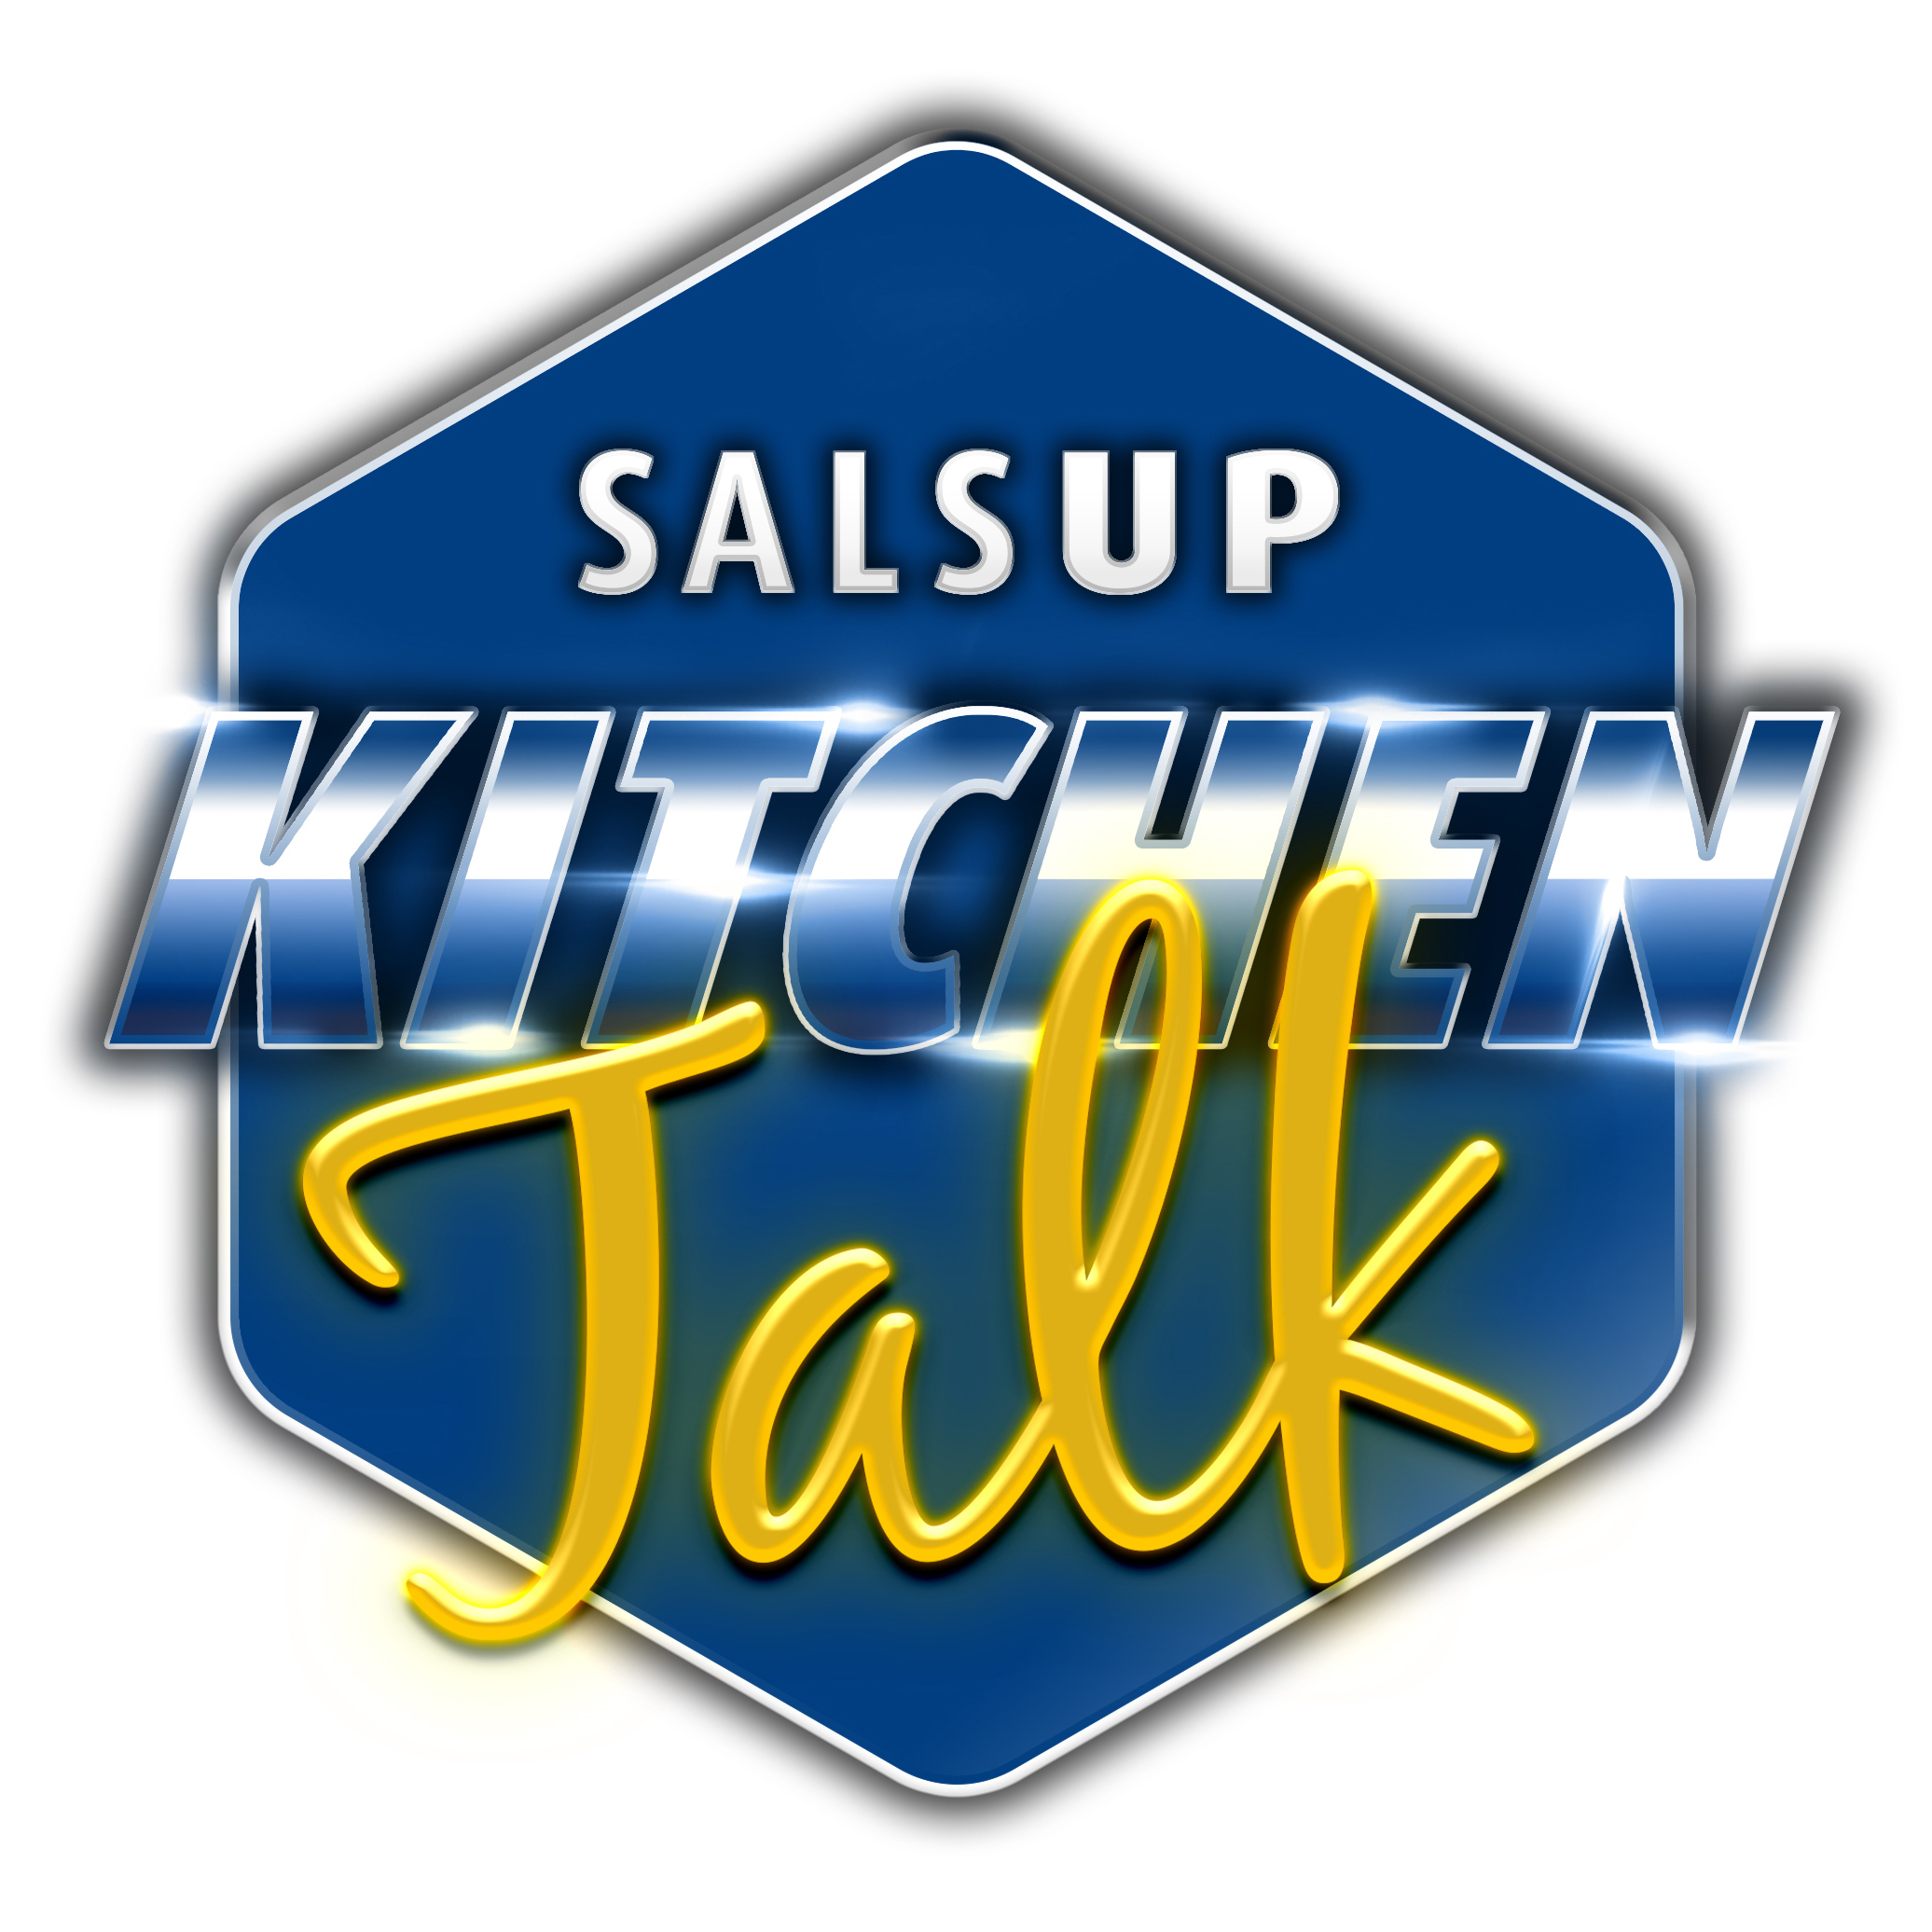 salsup-kitchen-talk-logo